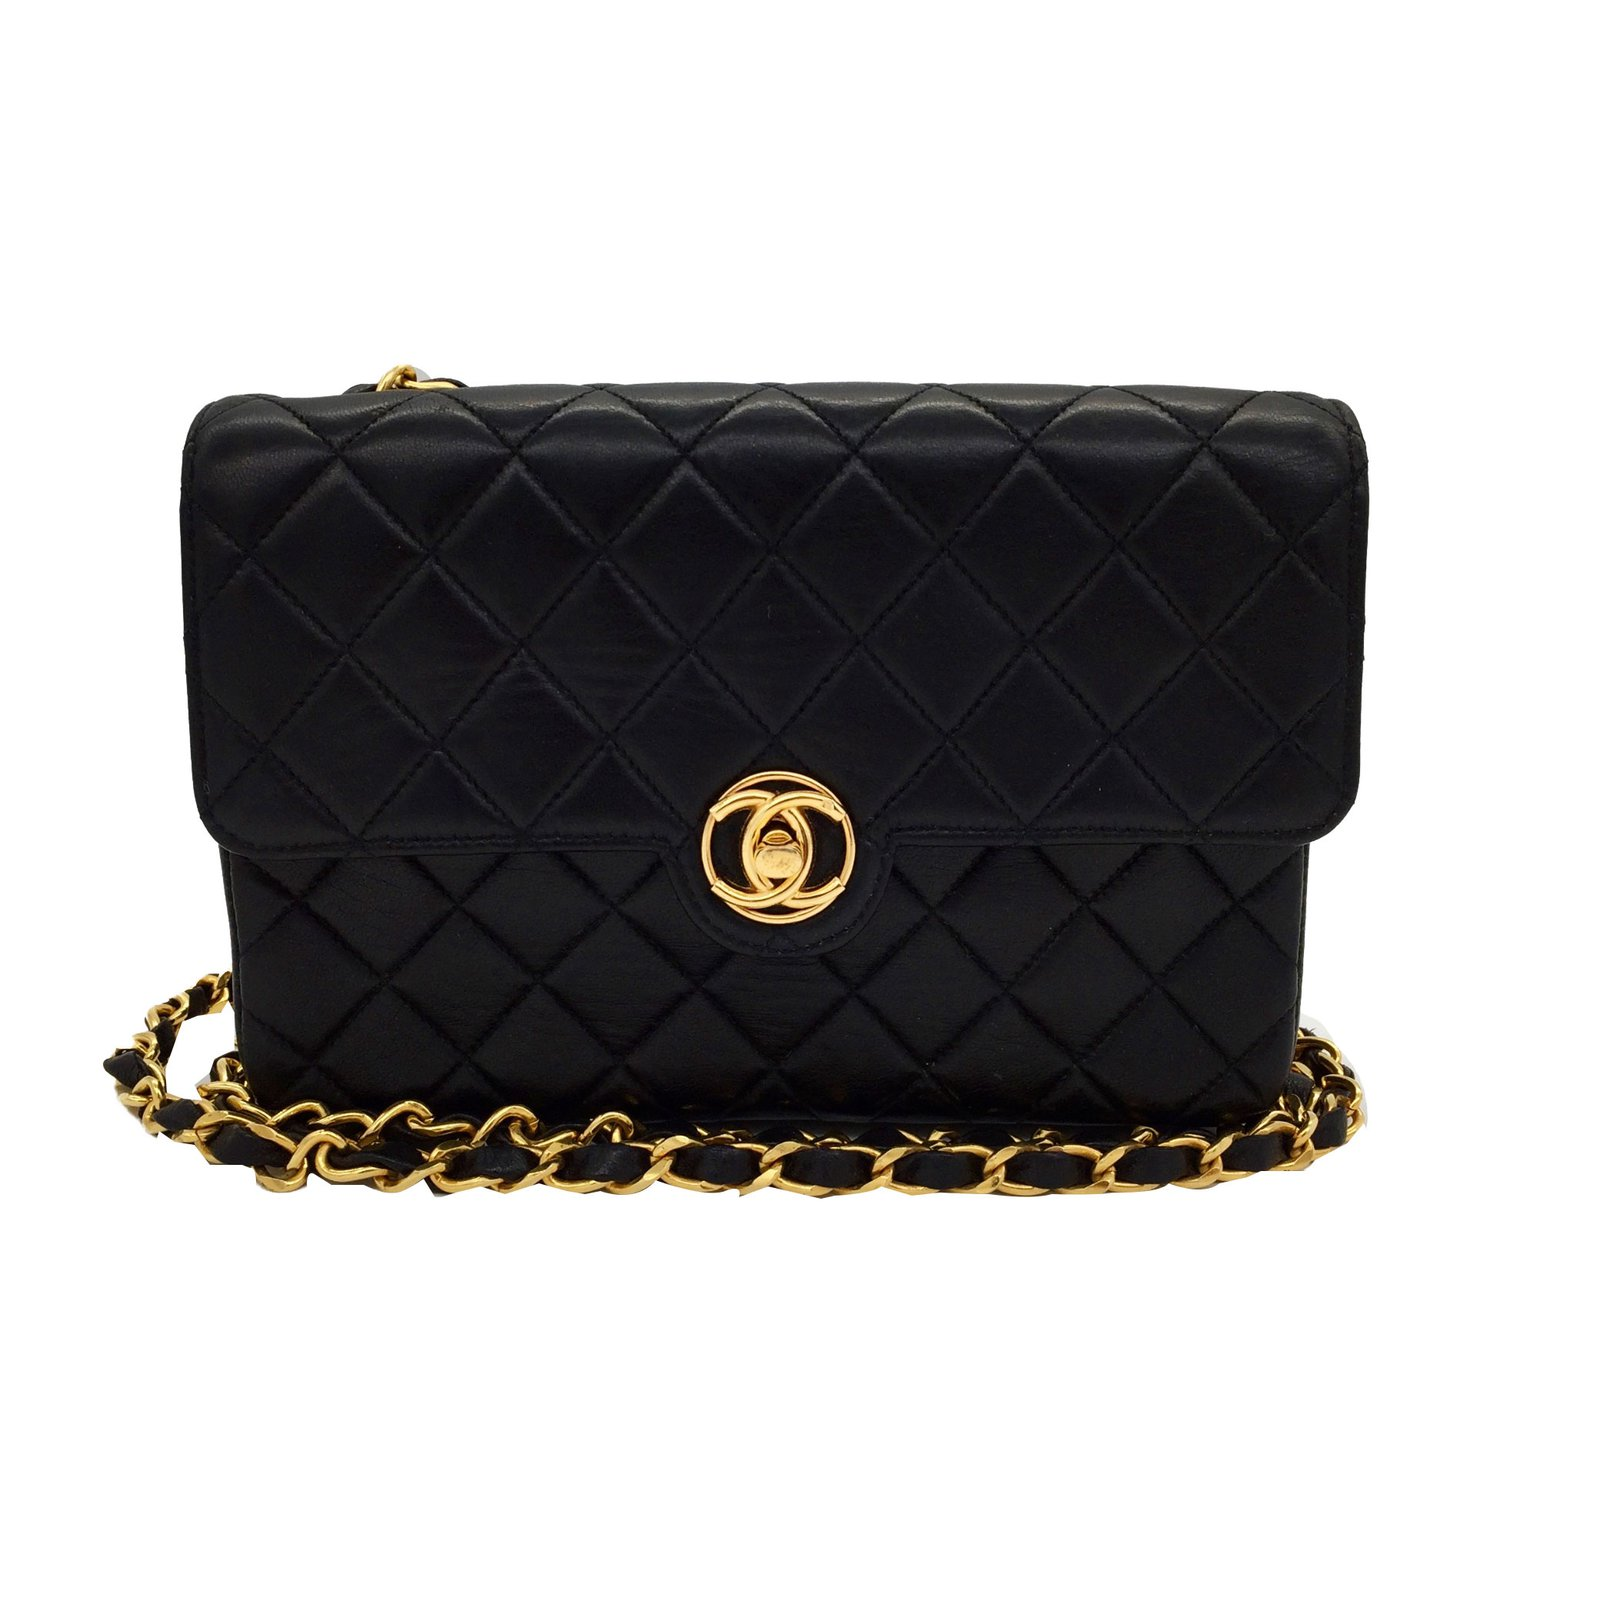 Sacs main chanel sac main cuir noir joli for Sac chanel interieur